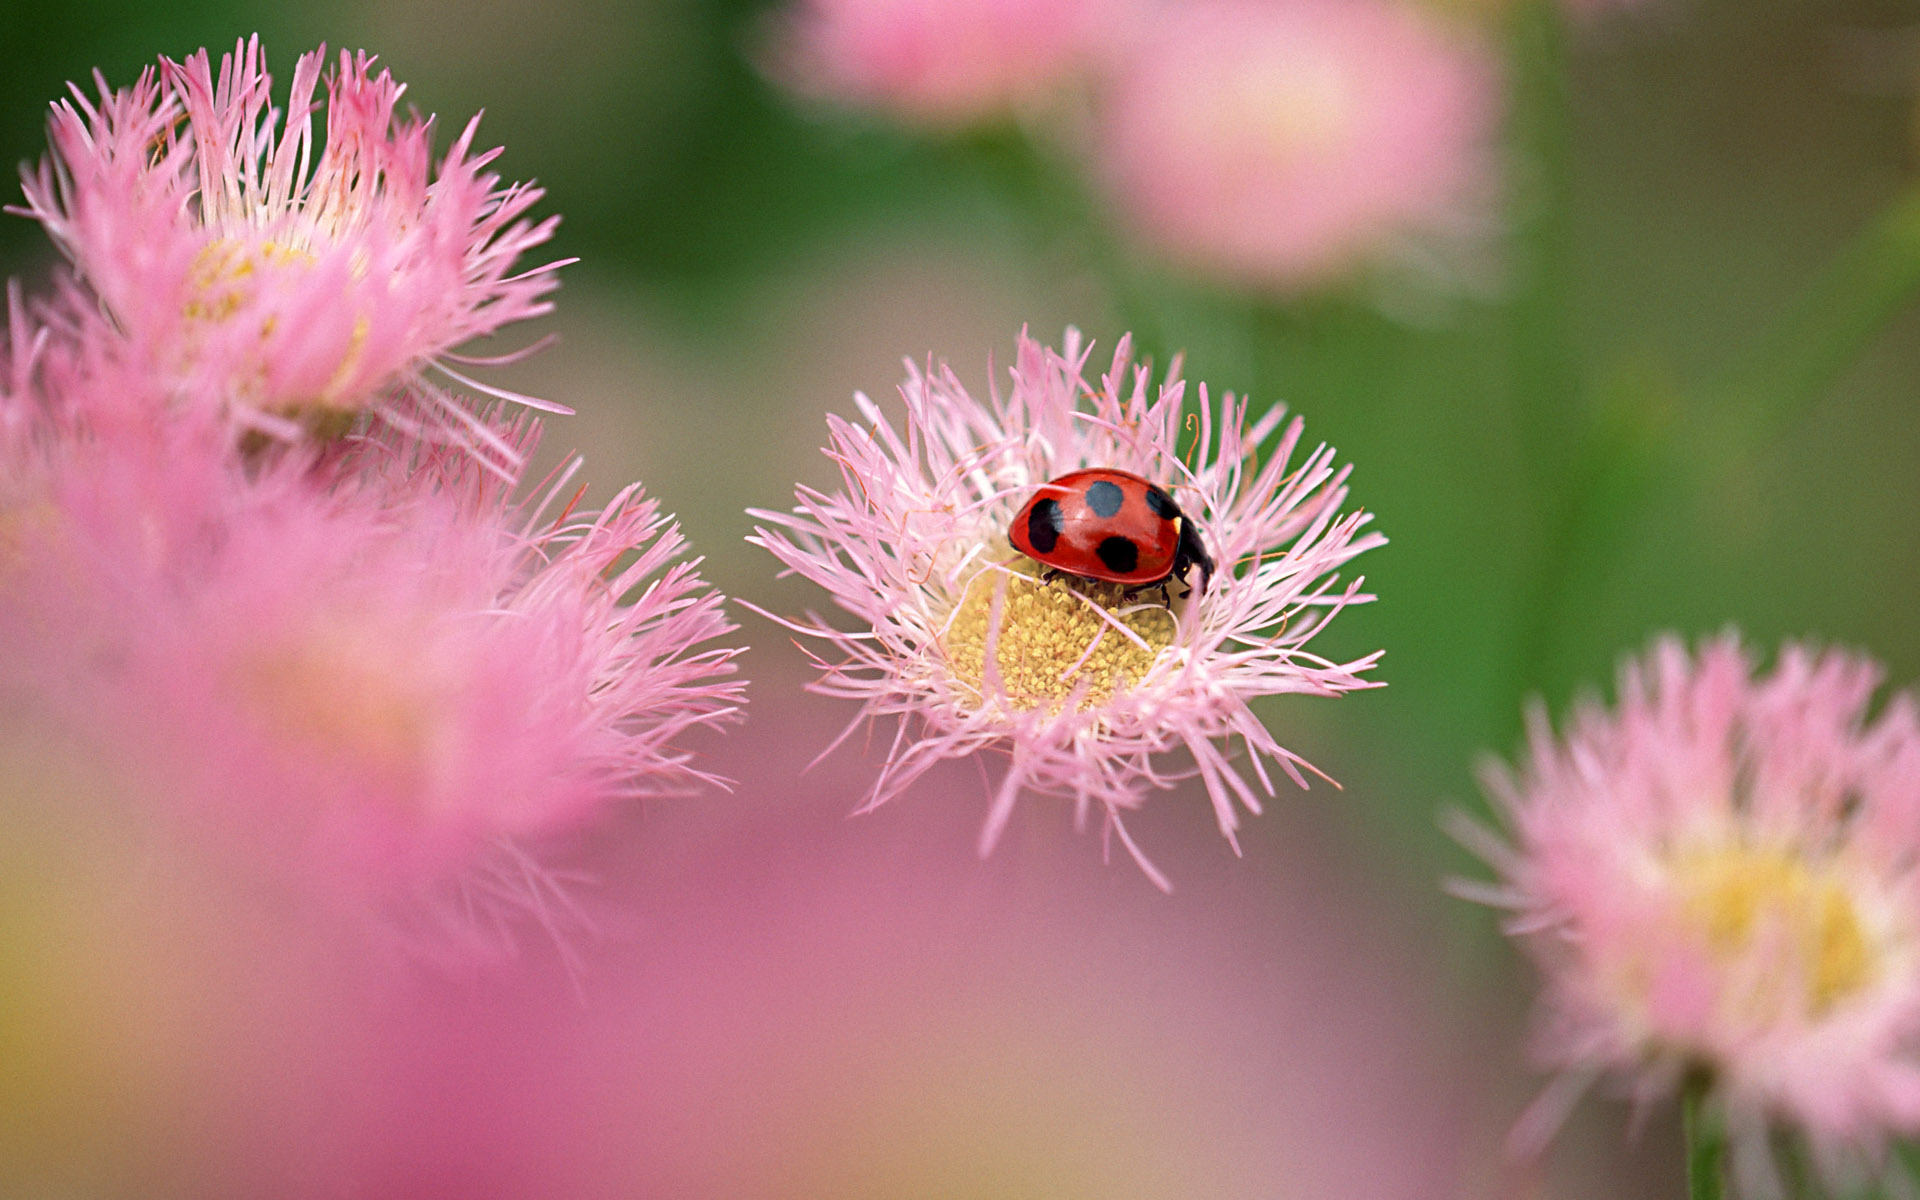 Widescreen insect photo material 337